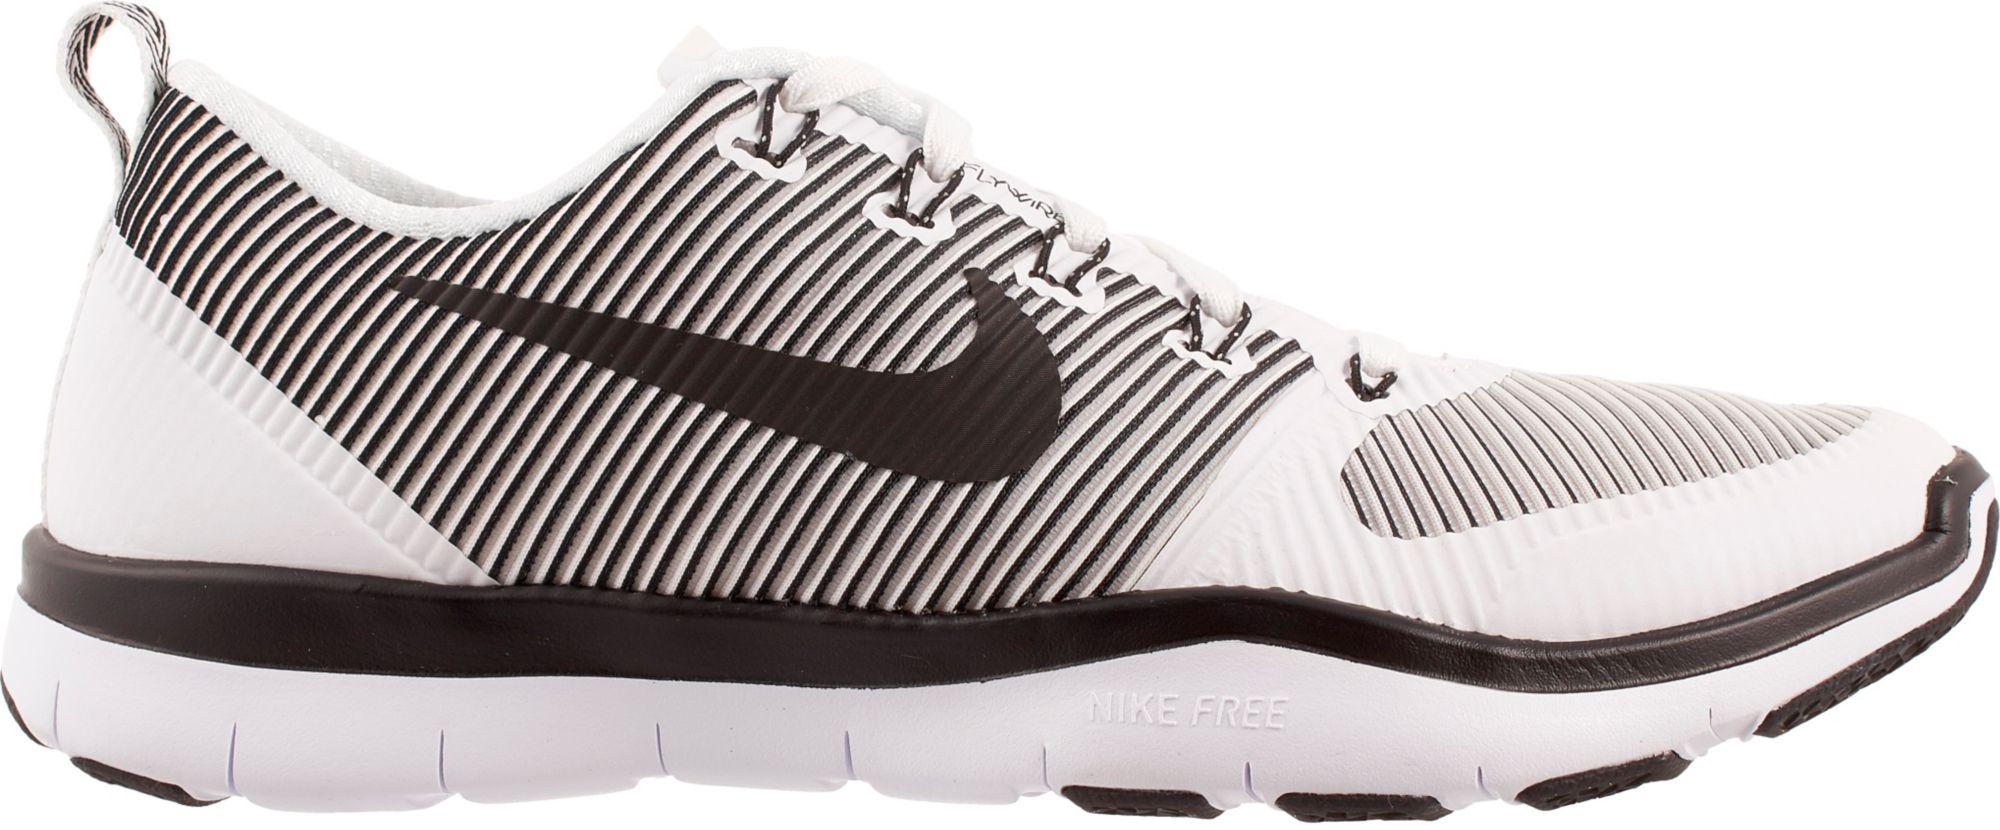 79dca21b19ee Lyst - Nike Free Train Versatility Training Shoes in White for Men